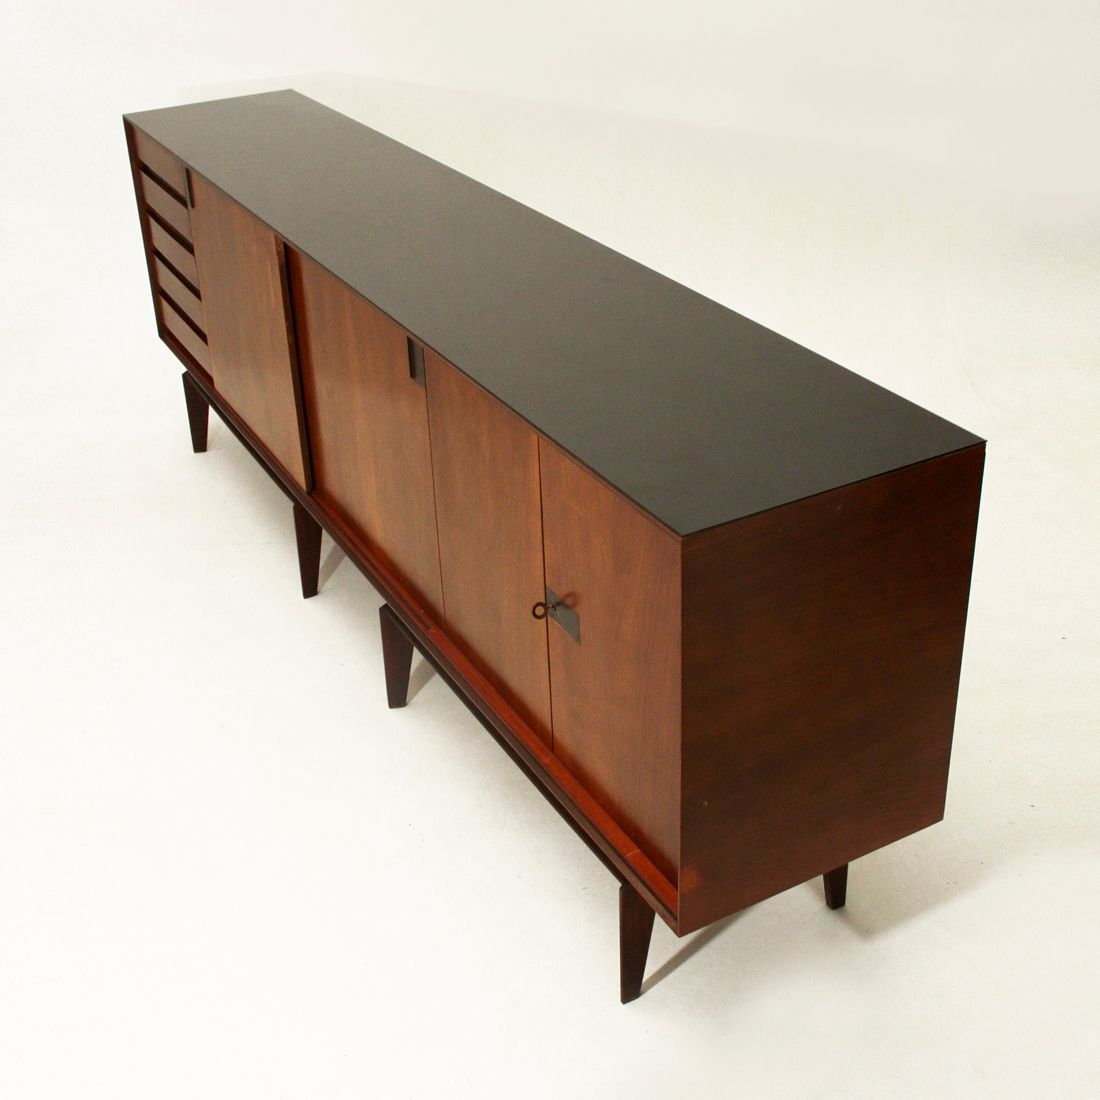 palisander sideboard by edmondo palutari for dassi 1950s. Black Bedroom Furniture Sets. Home Design Ideas